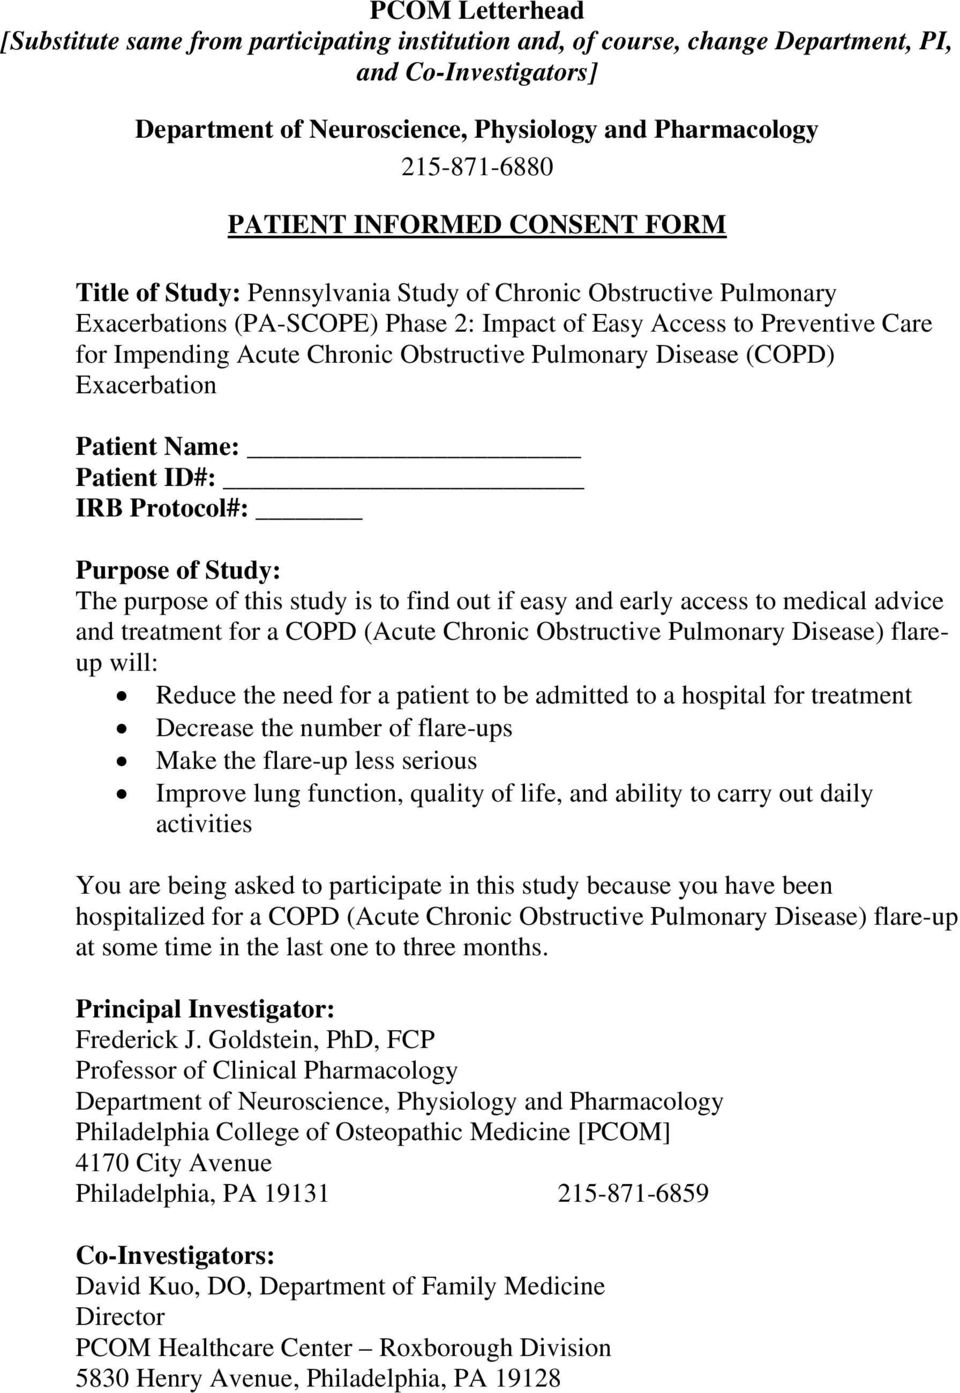 Chronic Obstructive Pulmonary Disease (COPD) Exacerbation Patient Name: Patient ID#: IRB Protocol#: Purpose of Study: The purpose of this study is to find out if easy and early access to medical